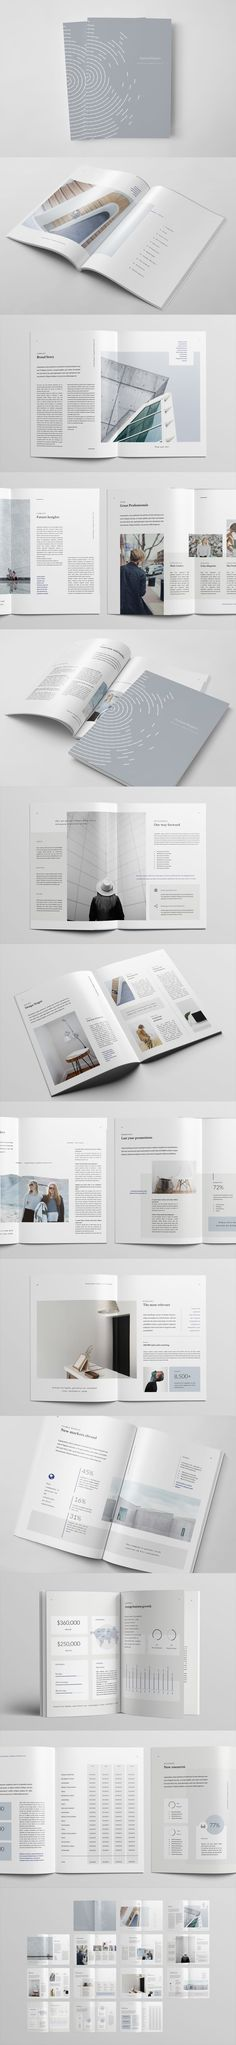 28 Pages Annual Report Template InDesign INDD